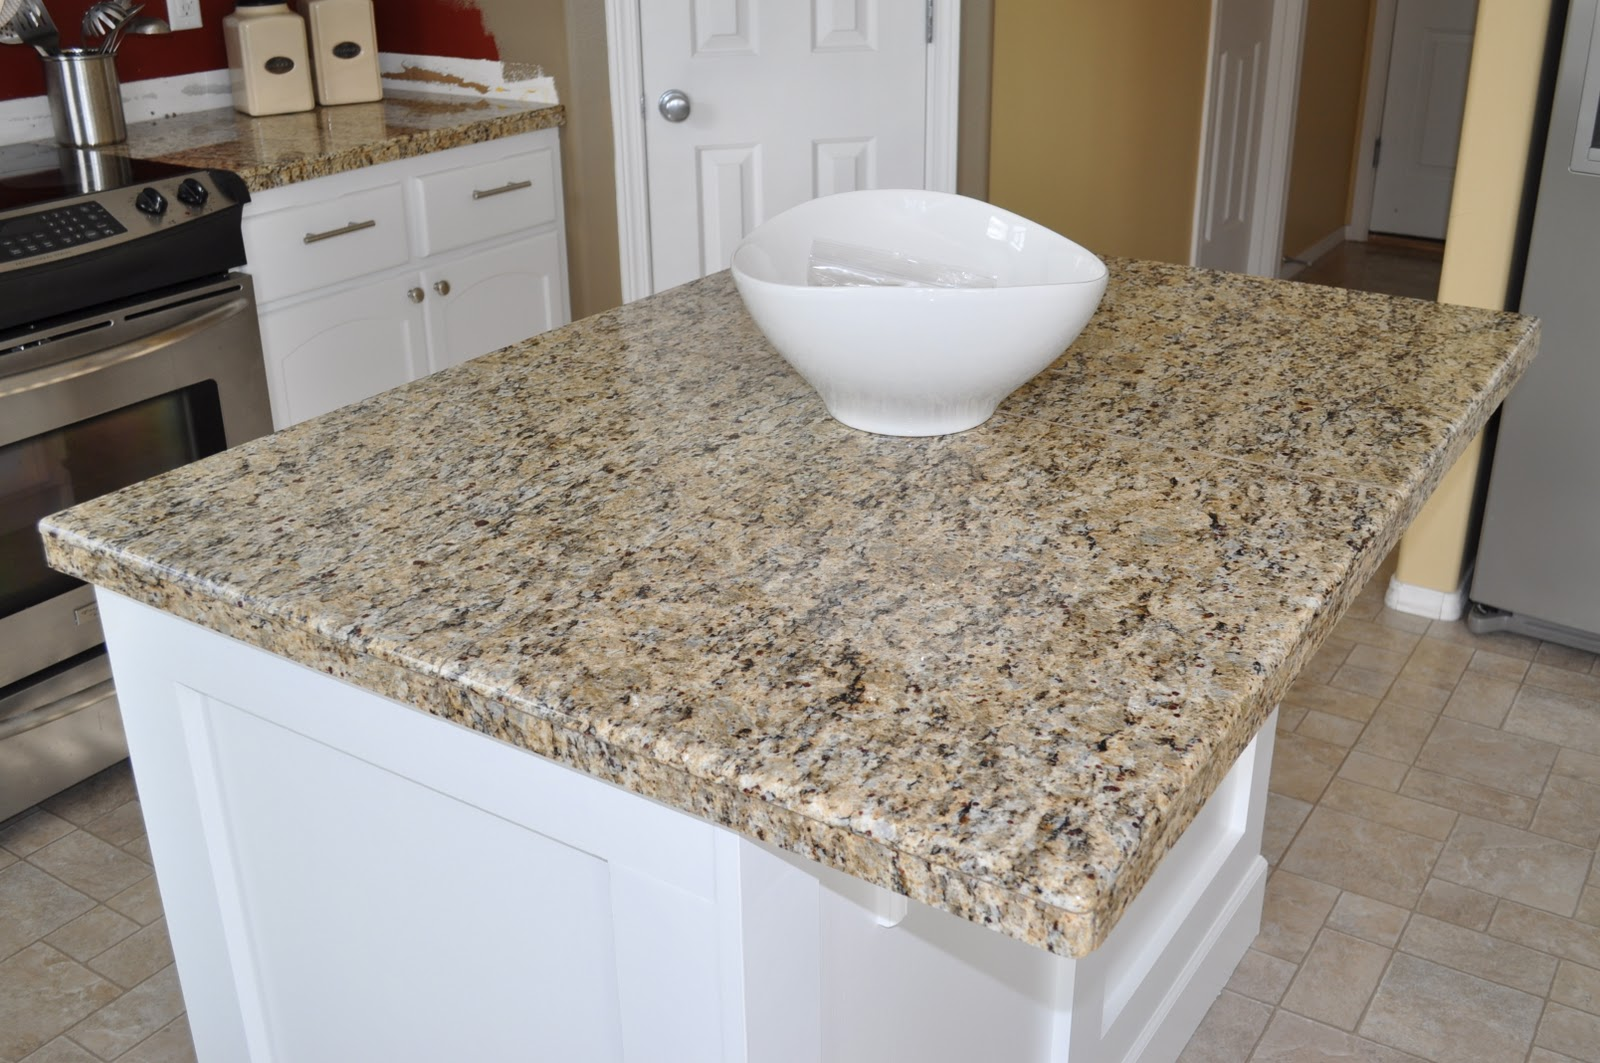 Granite Kitchen Slab : This is our island. I bet you cant even tell me how many tiles are on ...